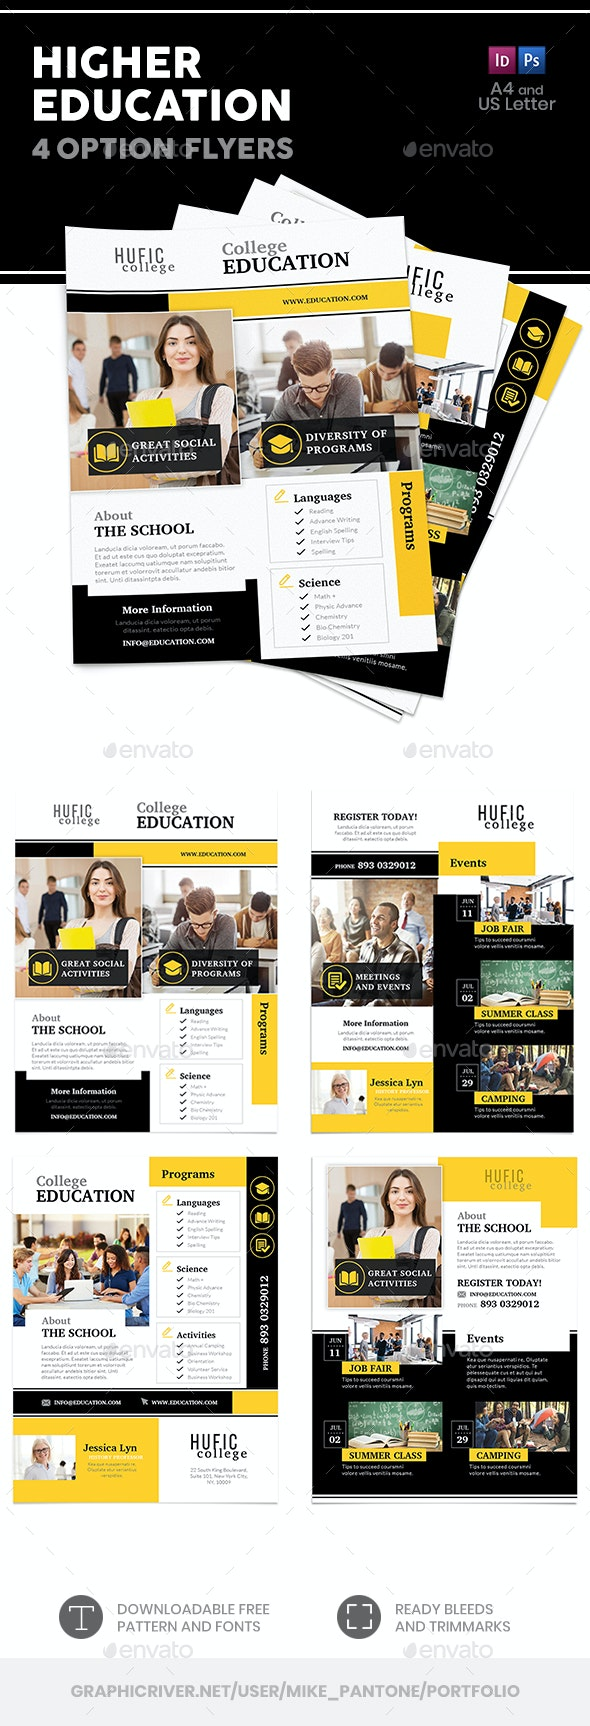 Higher Education Flyers – 4 Options - Corporate Flyers